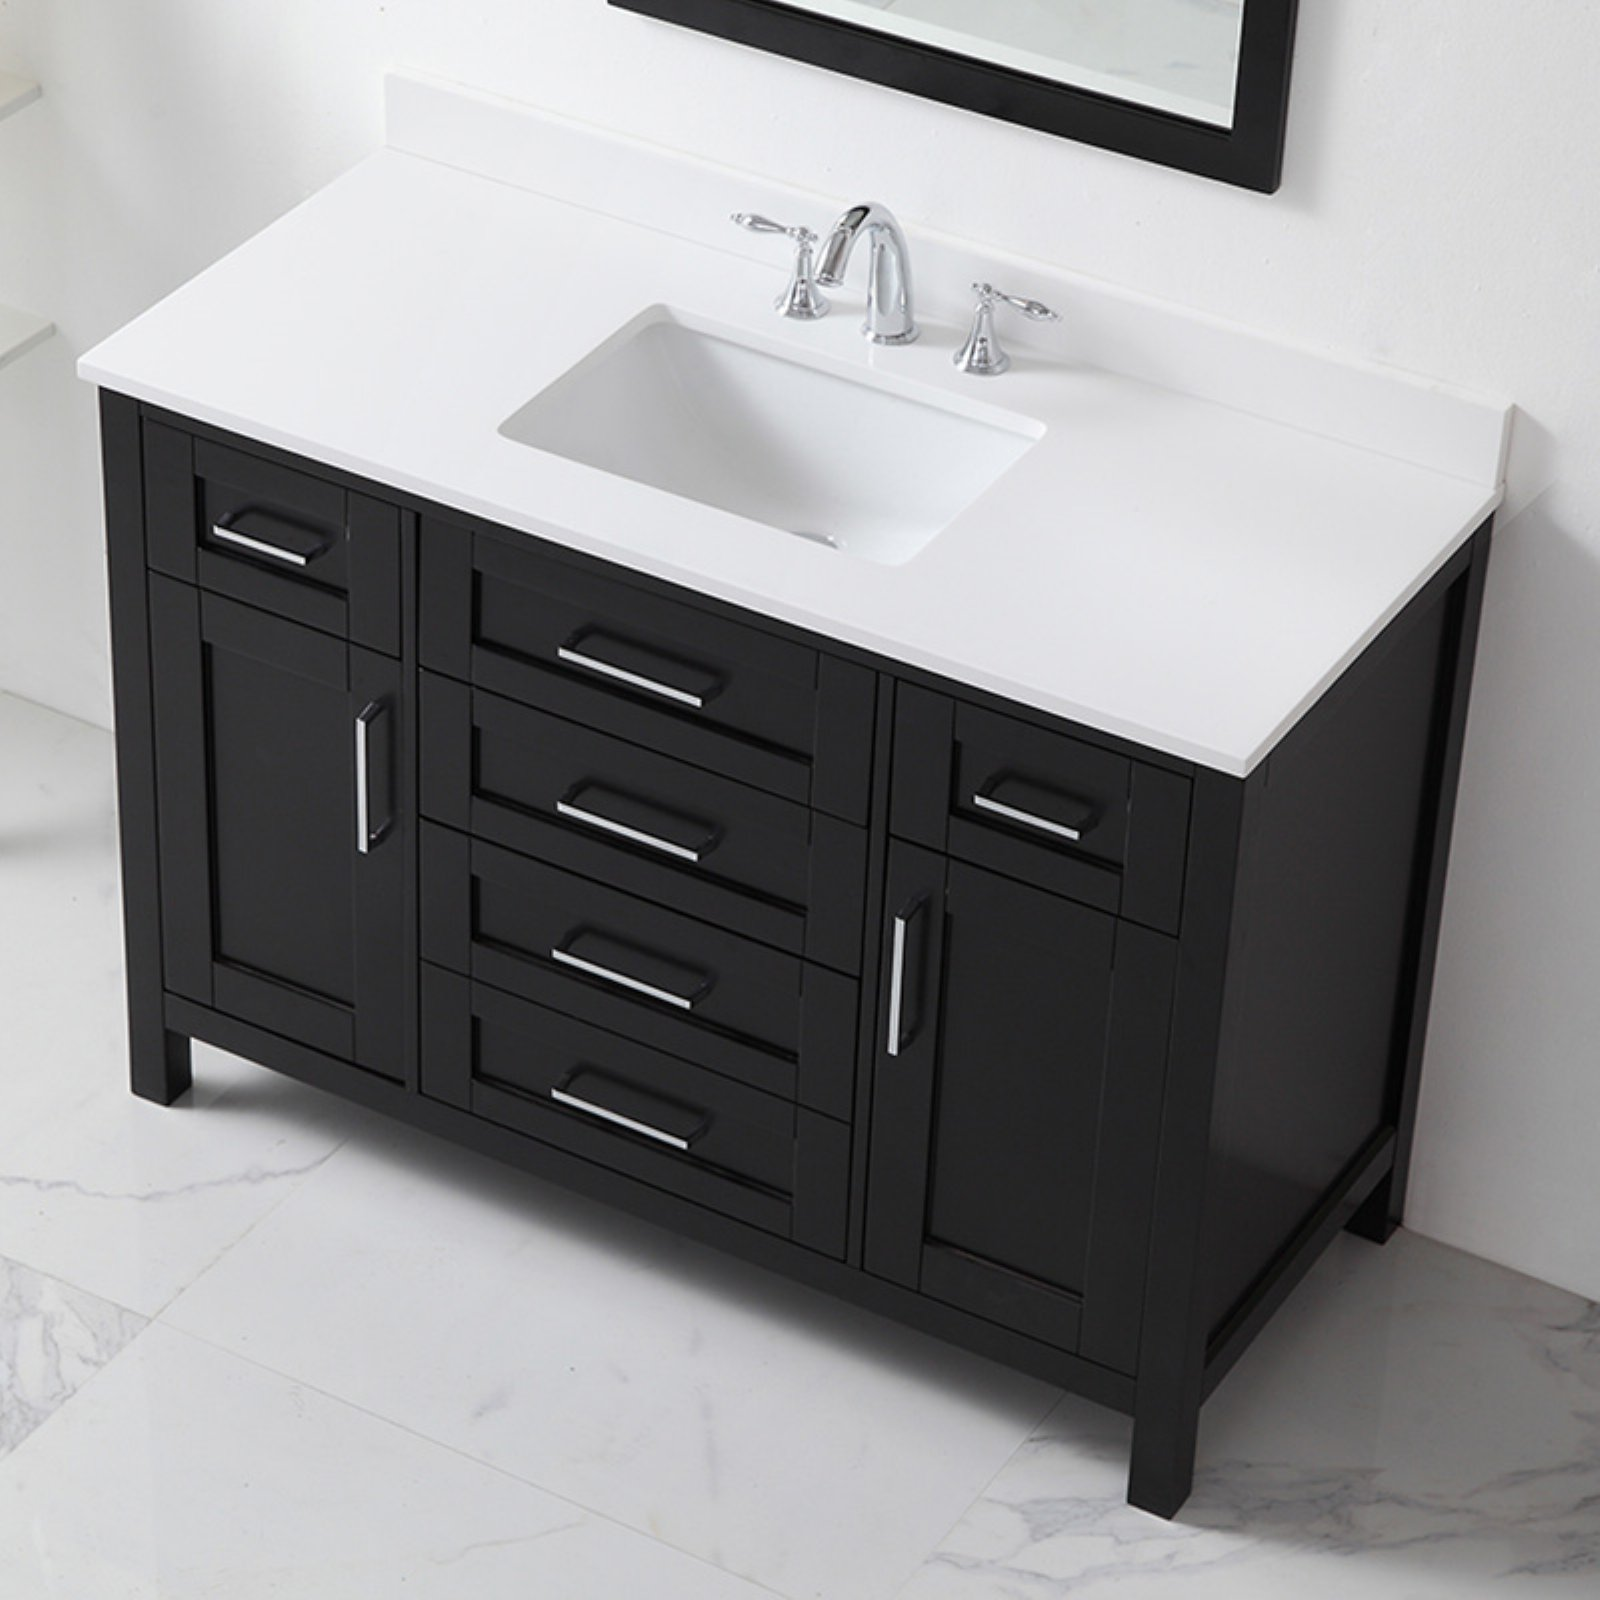 Ove decors 48 in single sink bathroom vanity - Walmart bathroom vanities with sink ...